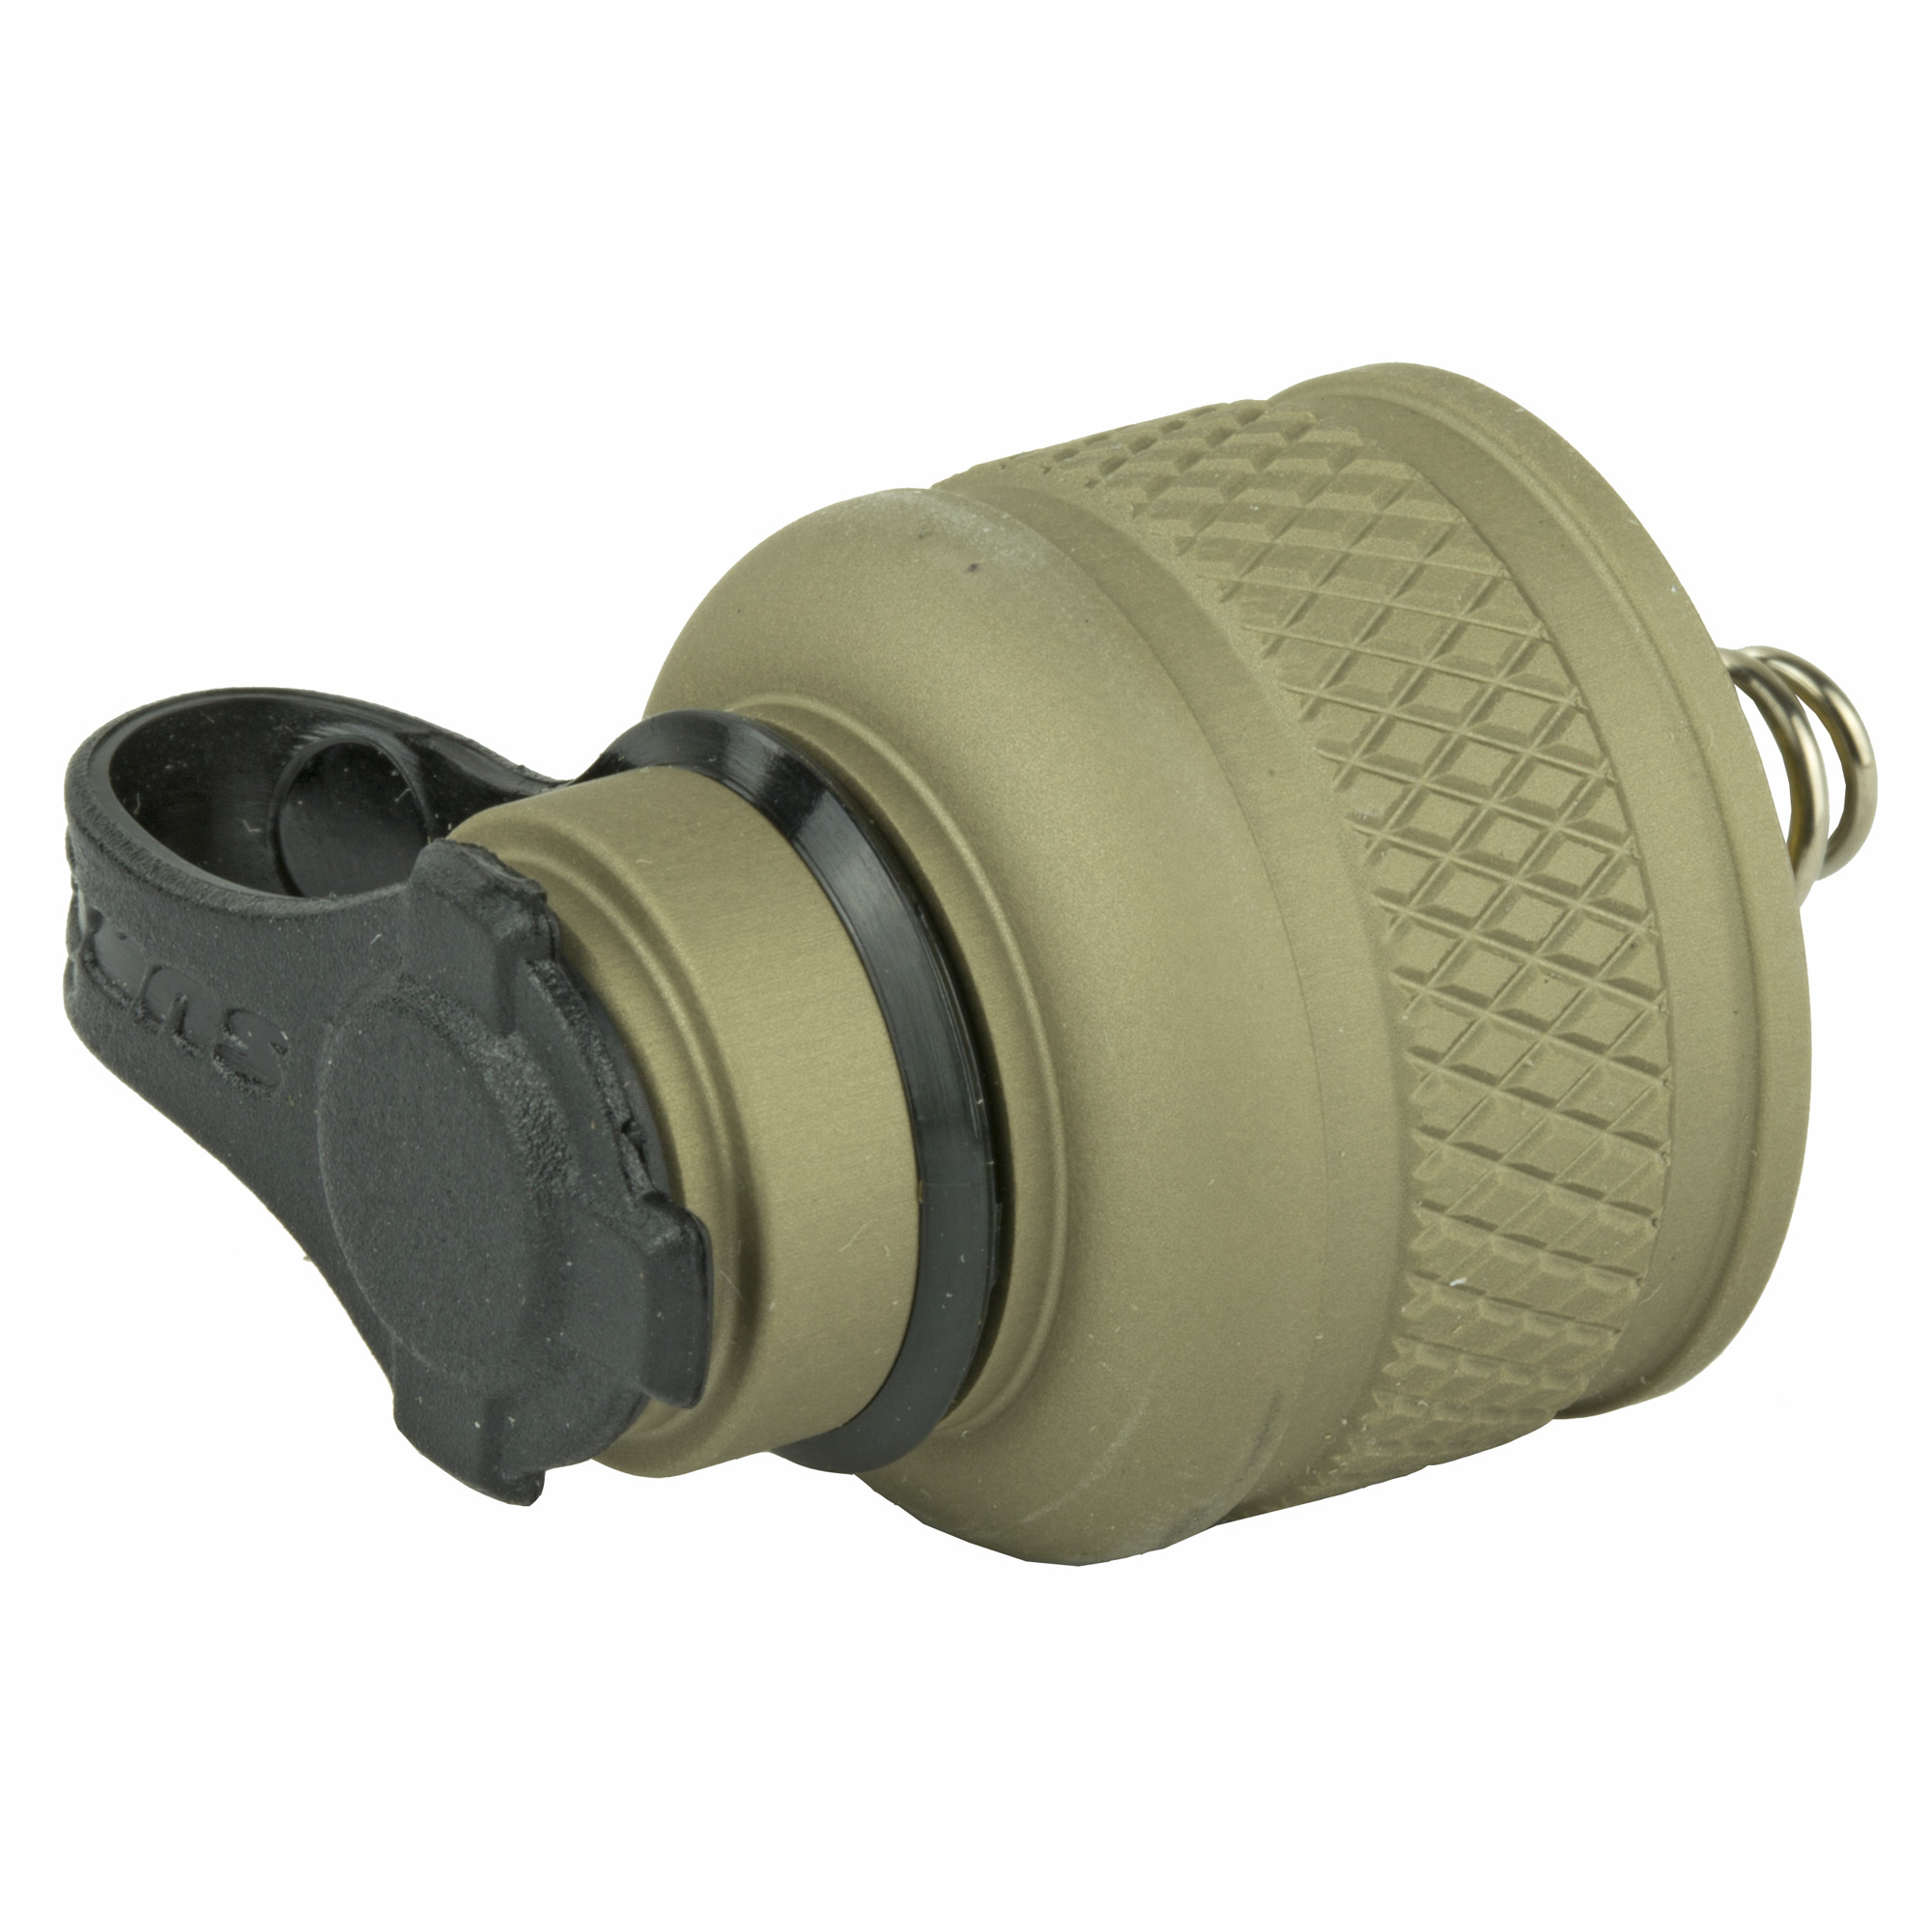 """Replace your Scout Light's rear push-button cap assembly with this cap in order to attach a SureFire tape switch. Lock-out feature positively prevents activation during tactical operations"""" transportation"""" or storage. Made from aerospace aluminum"""" MilSpec Type III hard-anodized. Available in Black or Desert Tan. Fits: Scout Light Weapon Lights; Flashlights with .75"""" diameter switch"""" including"""" E1E-HA"""" E1B"""" E1L-HA-WH"""" E2D-BK"""" E2DL-BK"""" E2L-HA-WH"""" L4-HA-WH"""